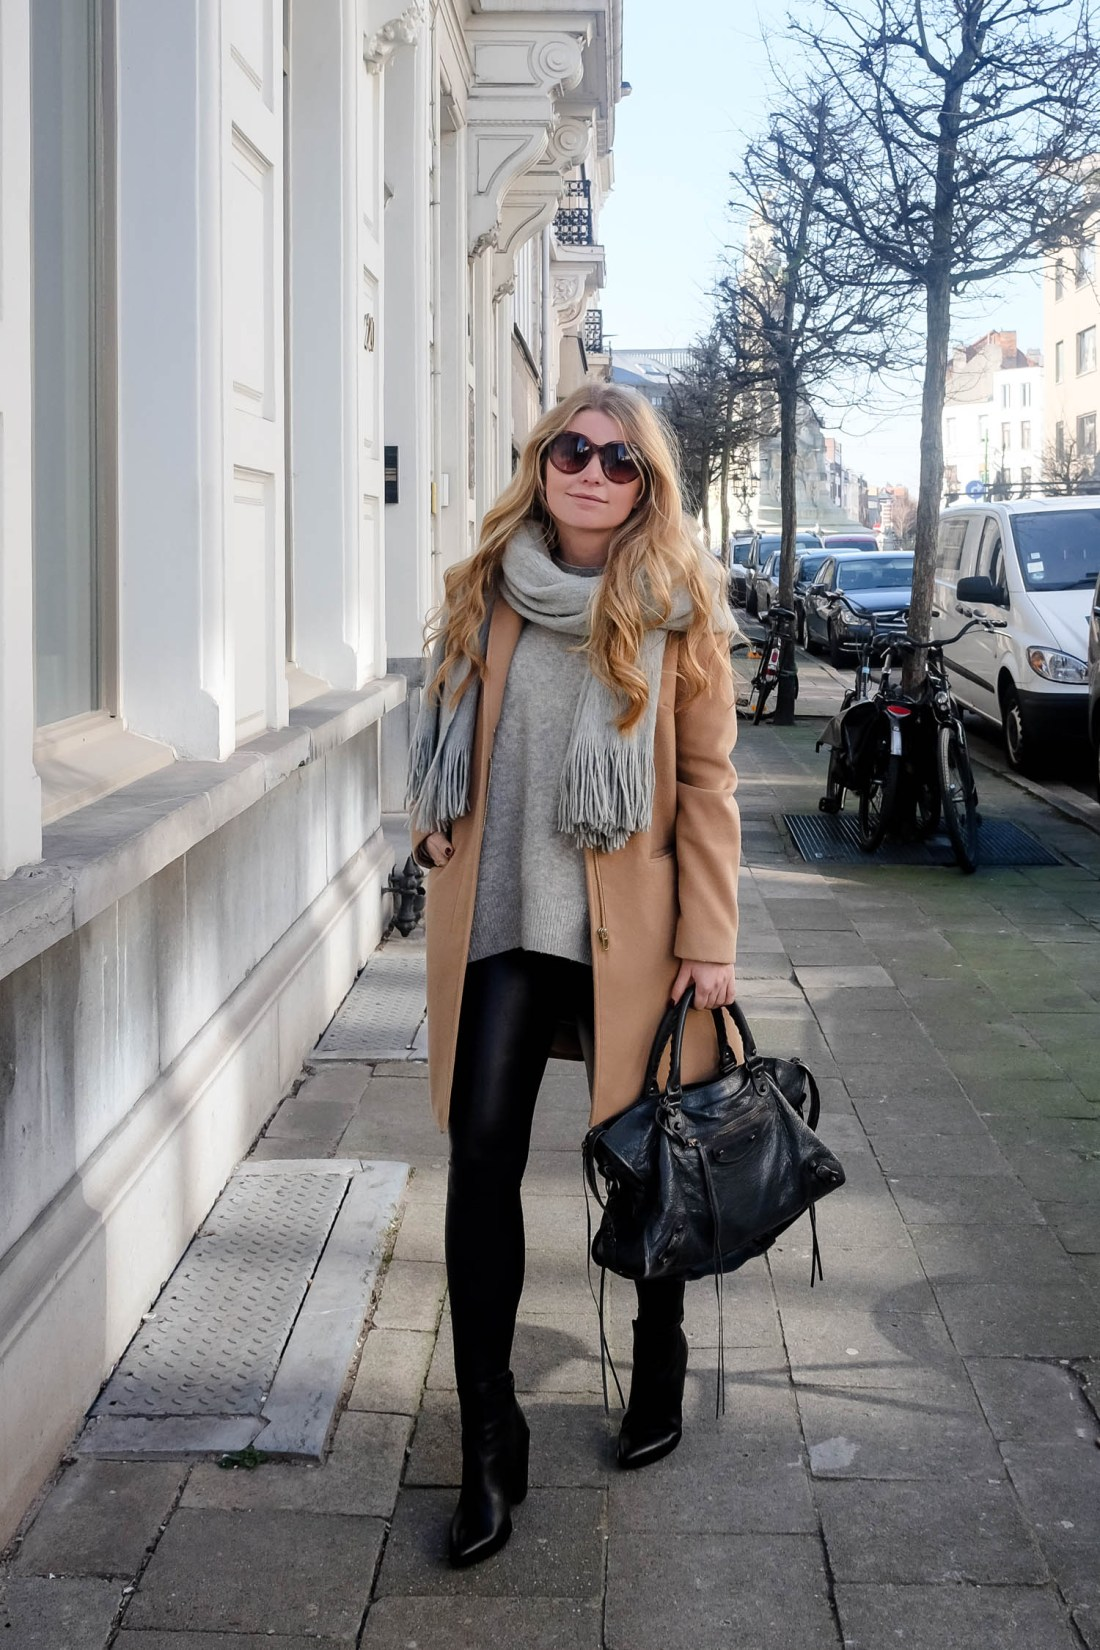 Elien Migalski Streetstyle Outfit March 2016 Sacha shoes-2